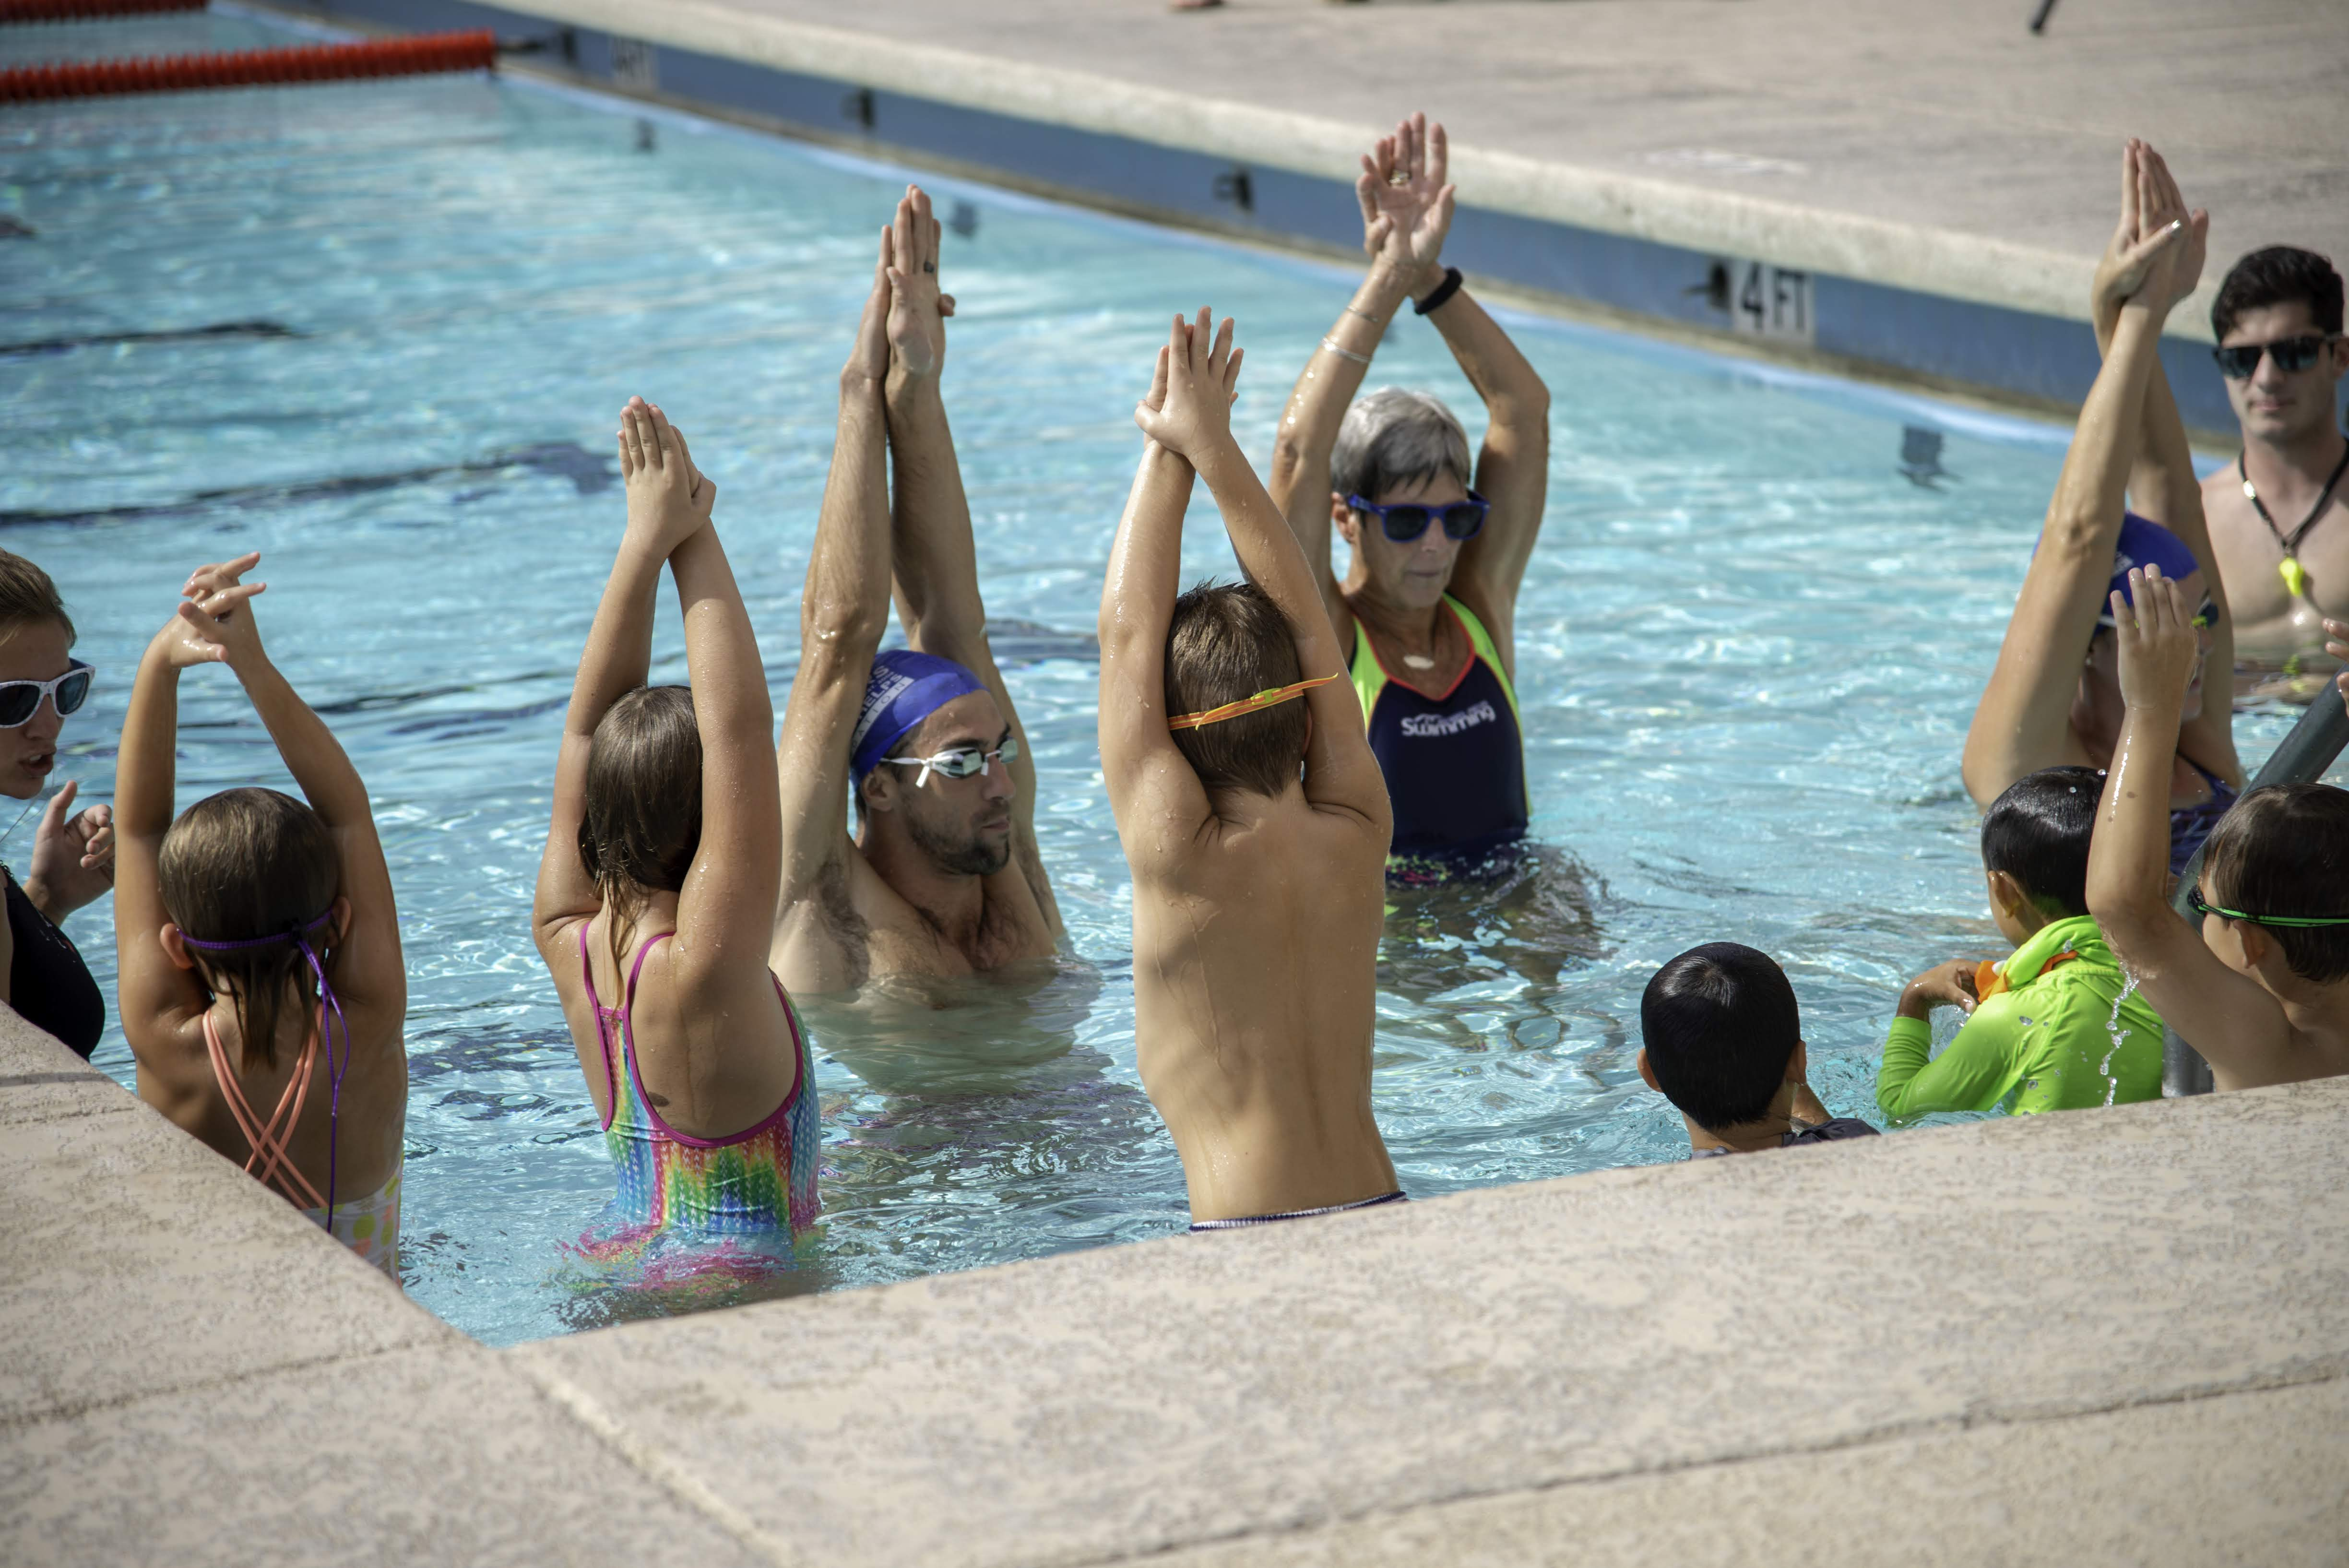 a group of kids in a pool with their hands raised above their heads.